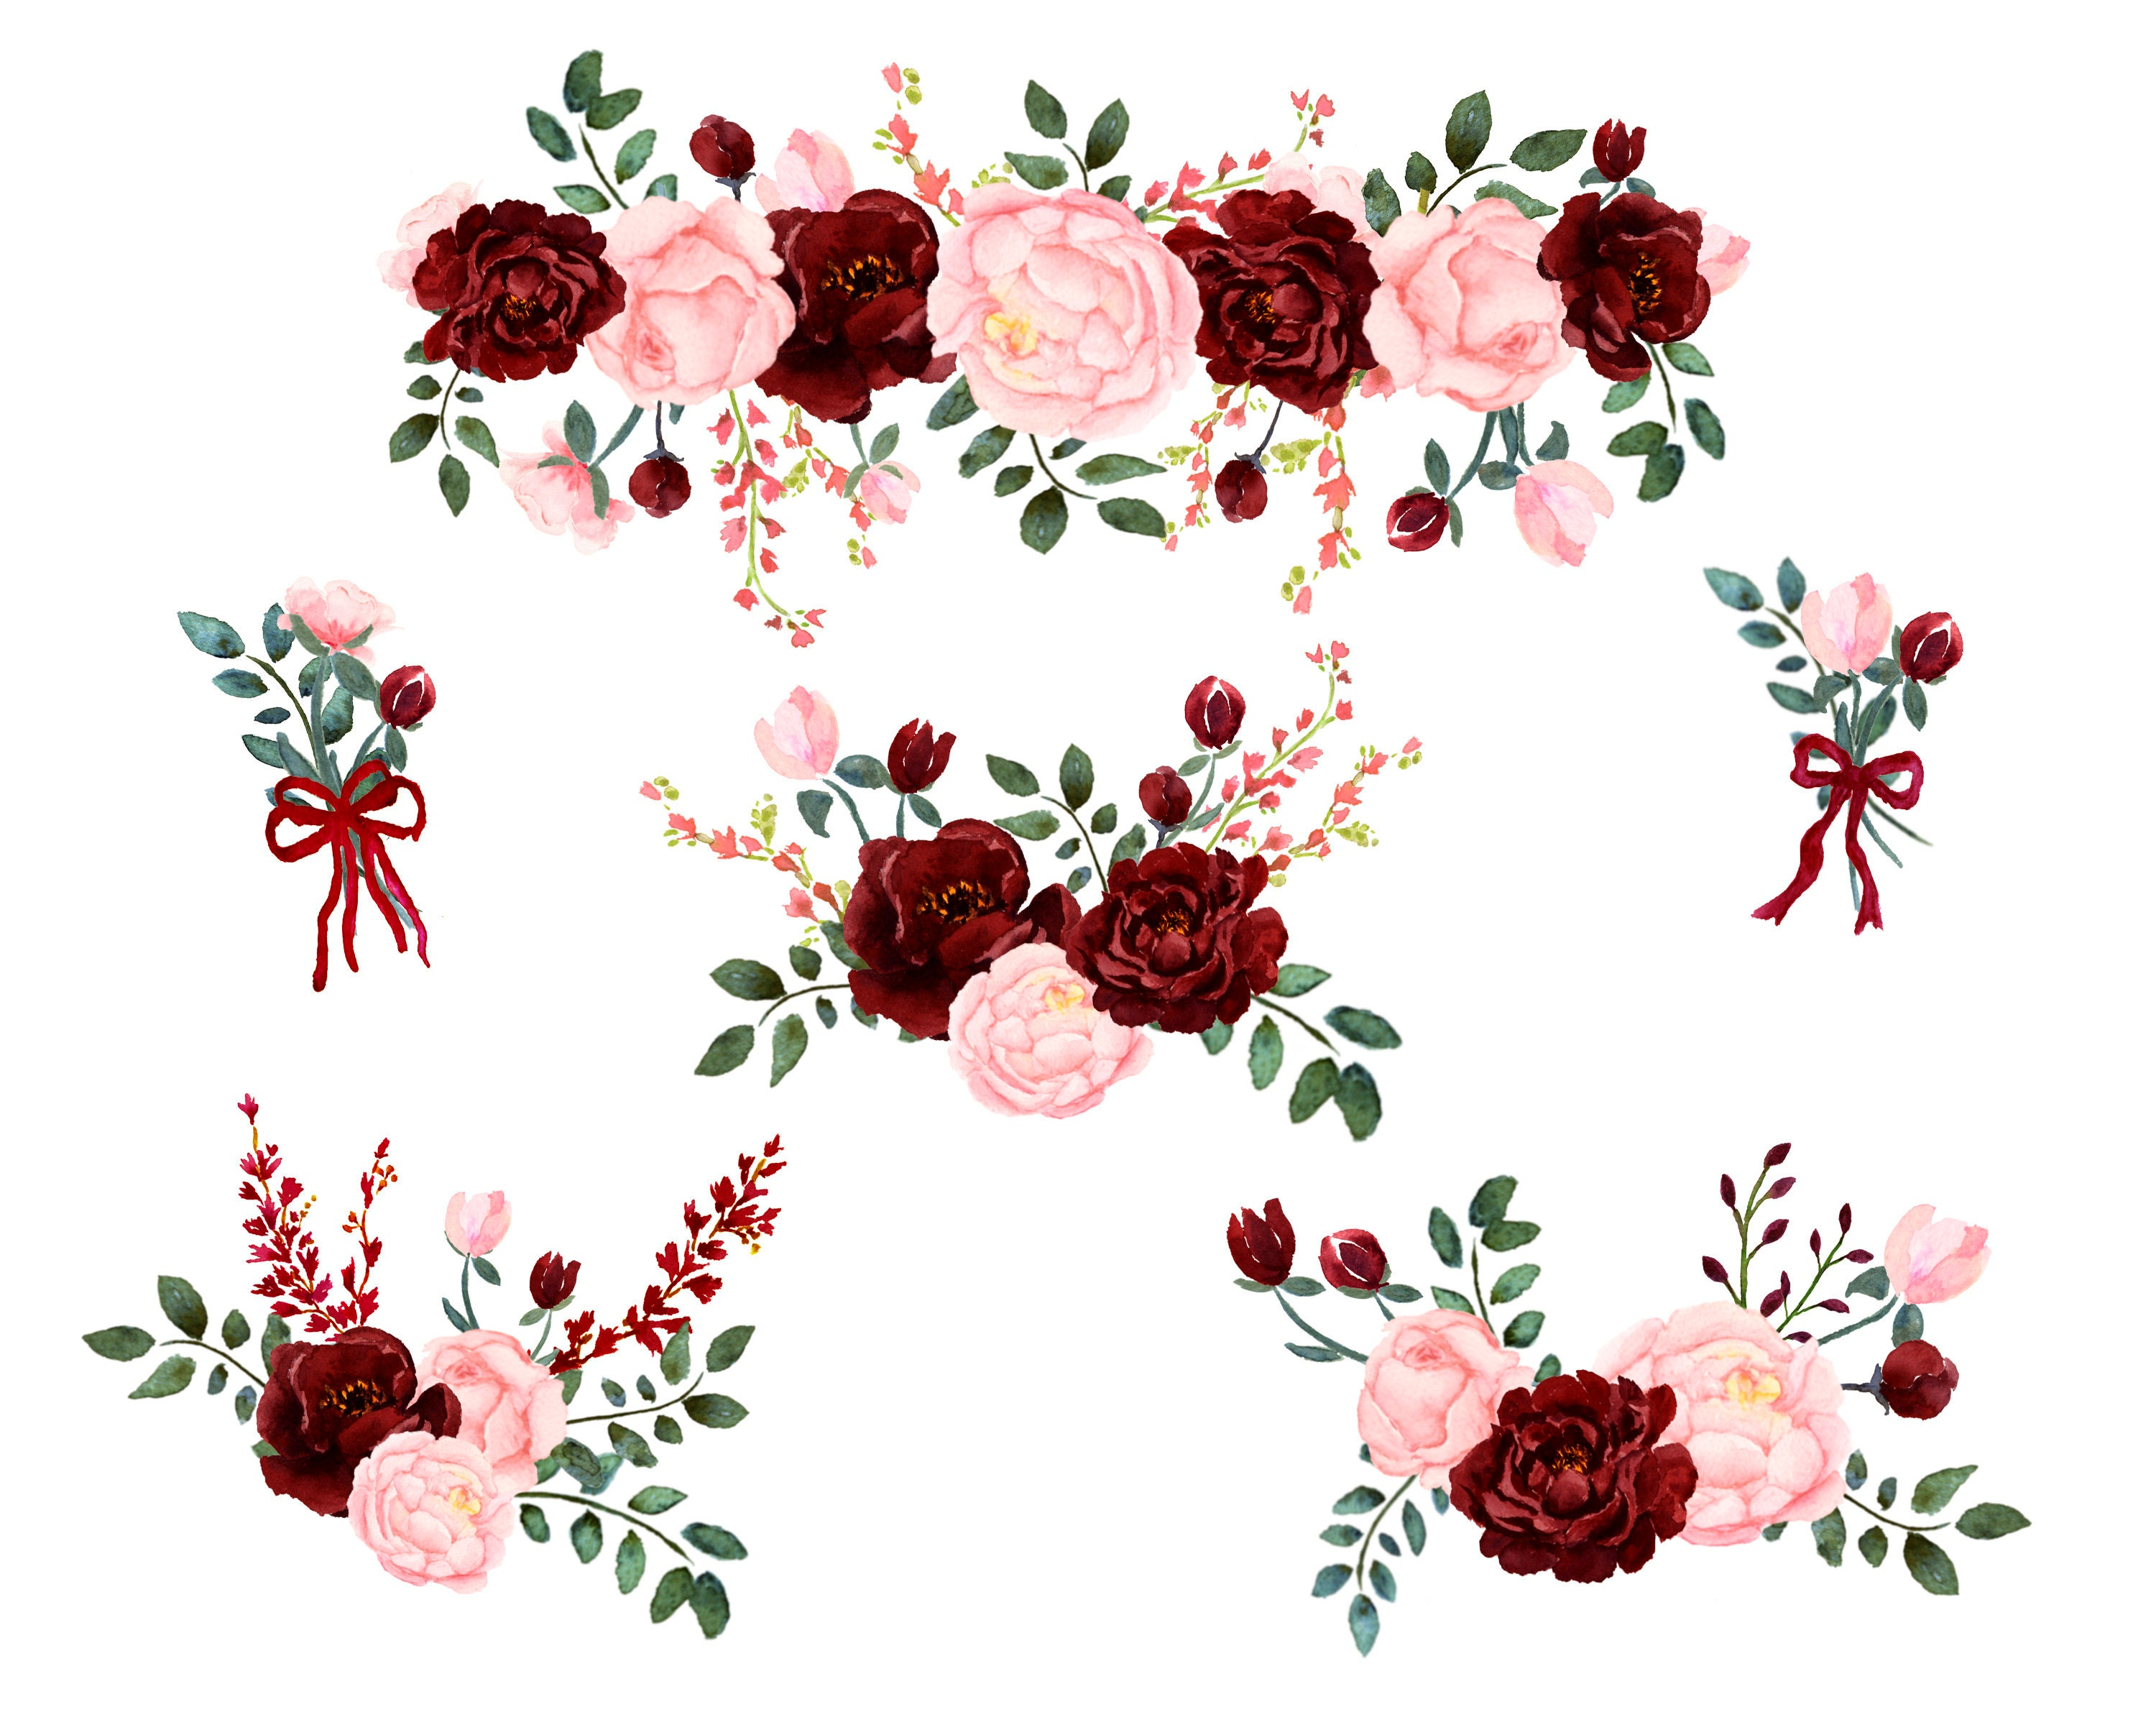 Pink And Burgundy Floral Watercolor Collection Pink Blush